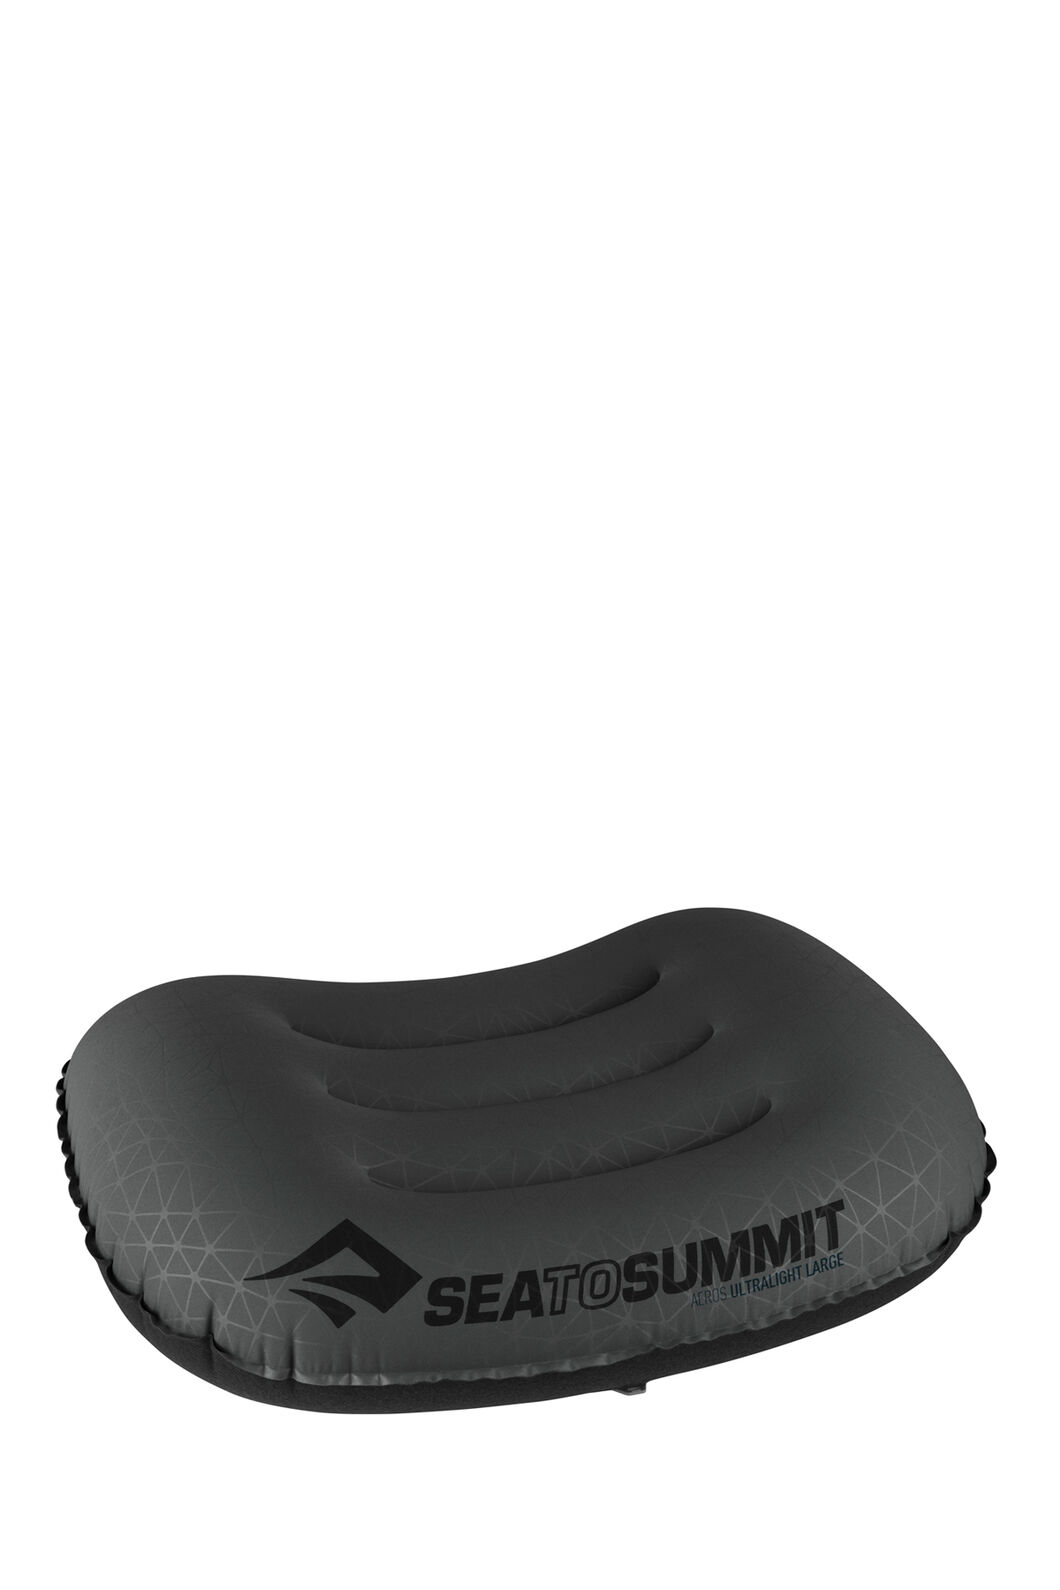 Sea to Summit Aeros Ultralight Pillow — Large, Grey, hi-res